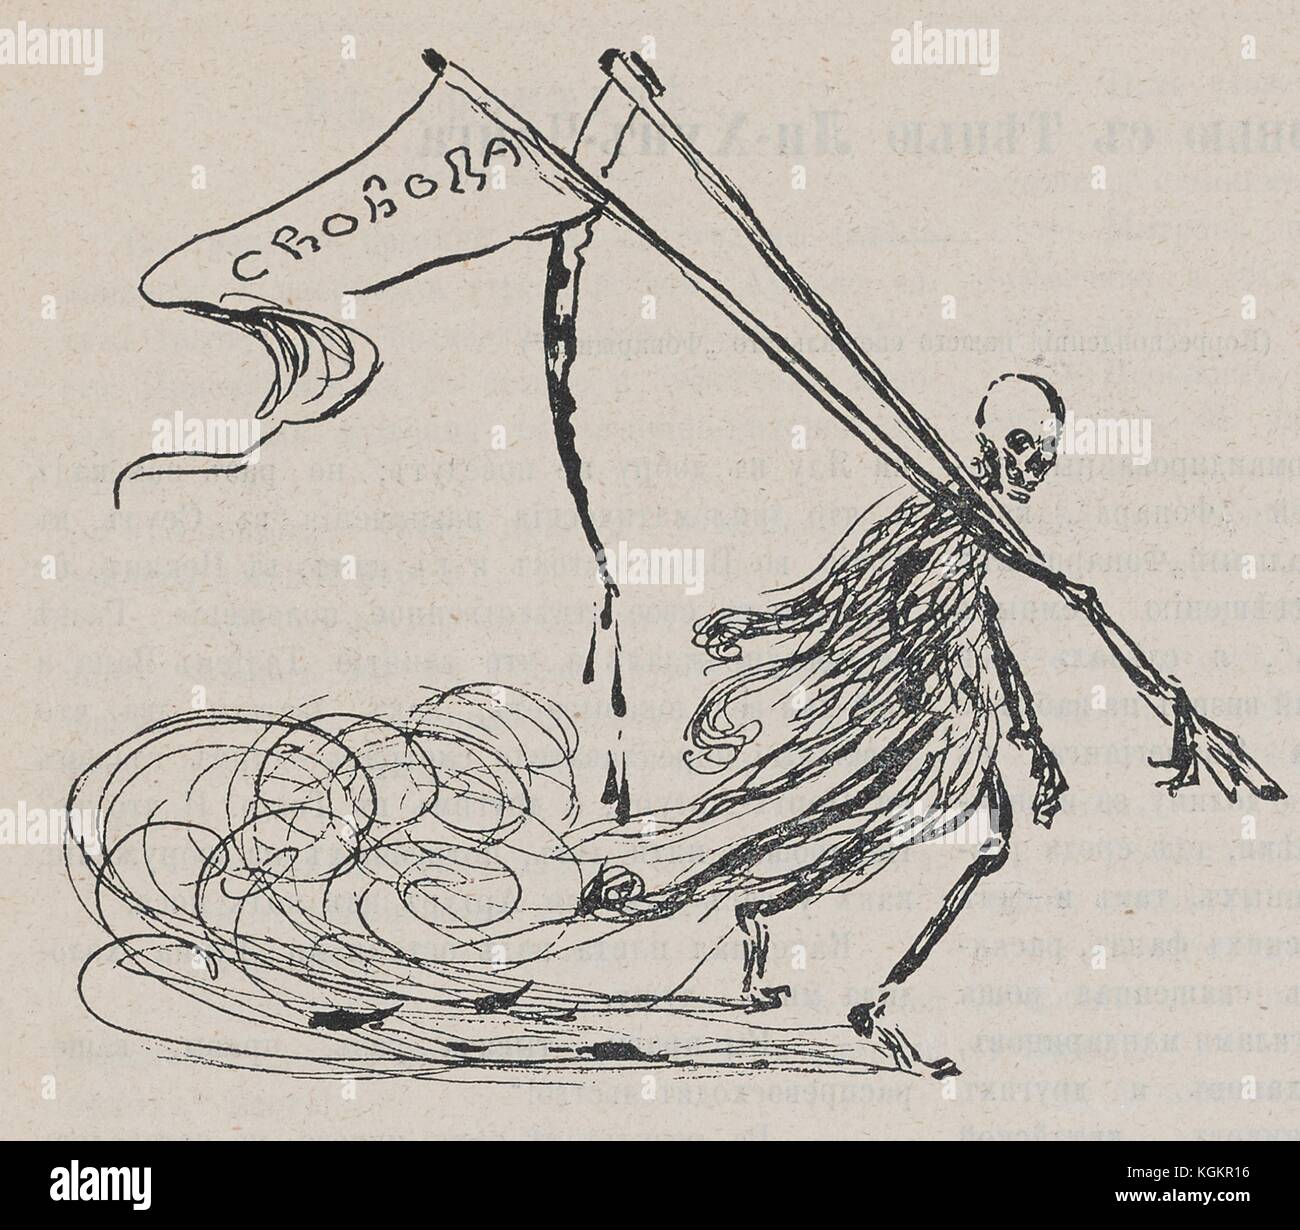 Cartoon from the Russian satirical journal Fonar (Lantern) showing a  skeleton carrying a blood-covered scythe and a flag with the word  'freedom', 1905.